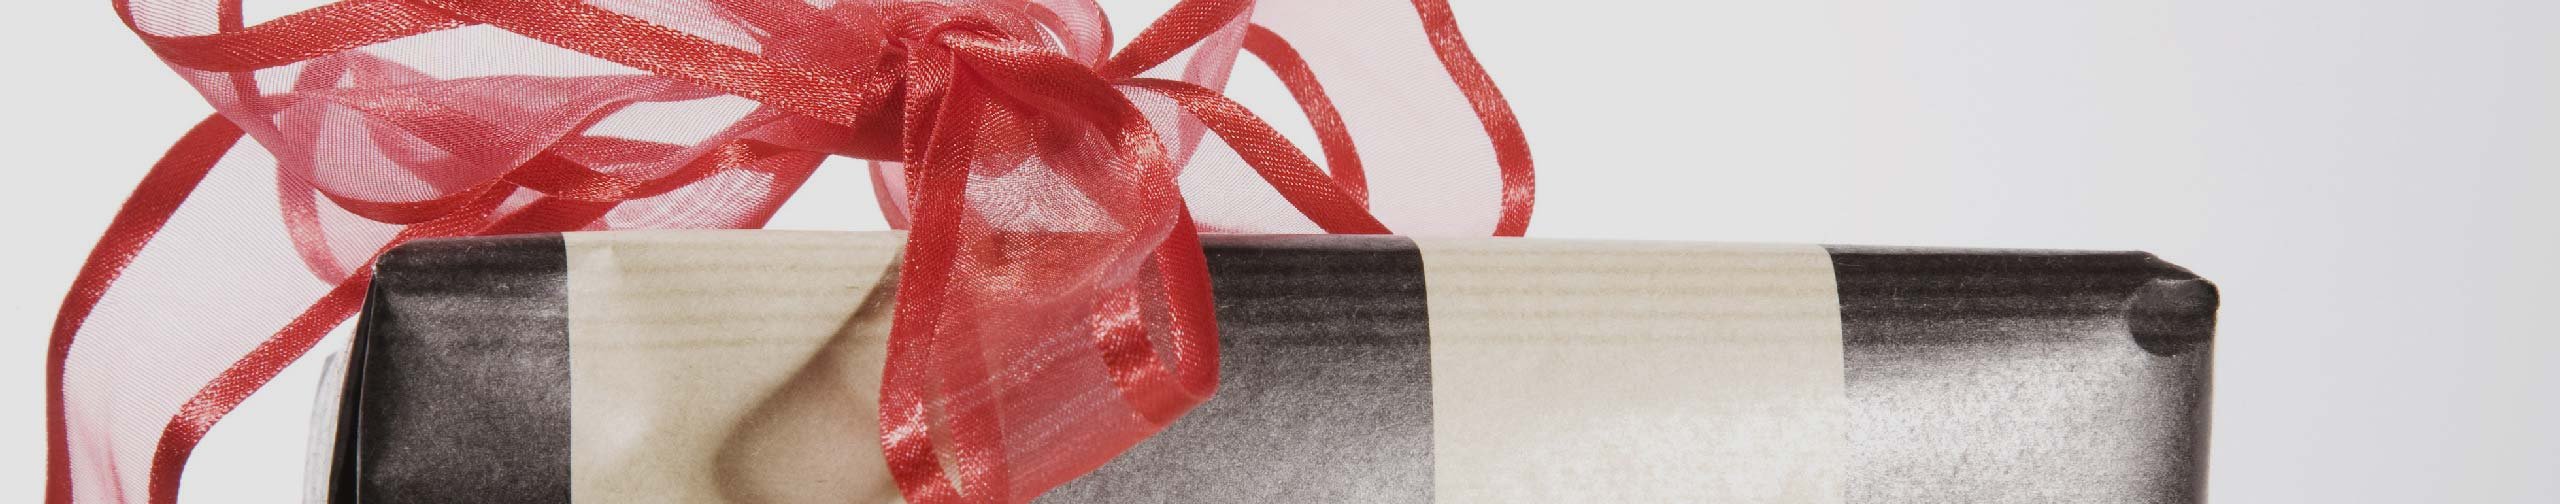 gift-landing-pages-1.jpg